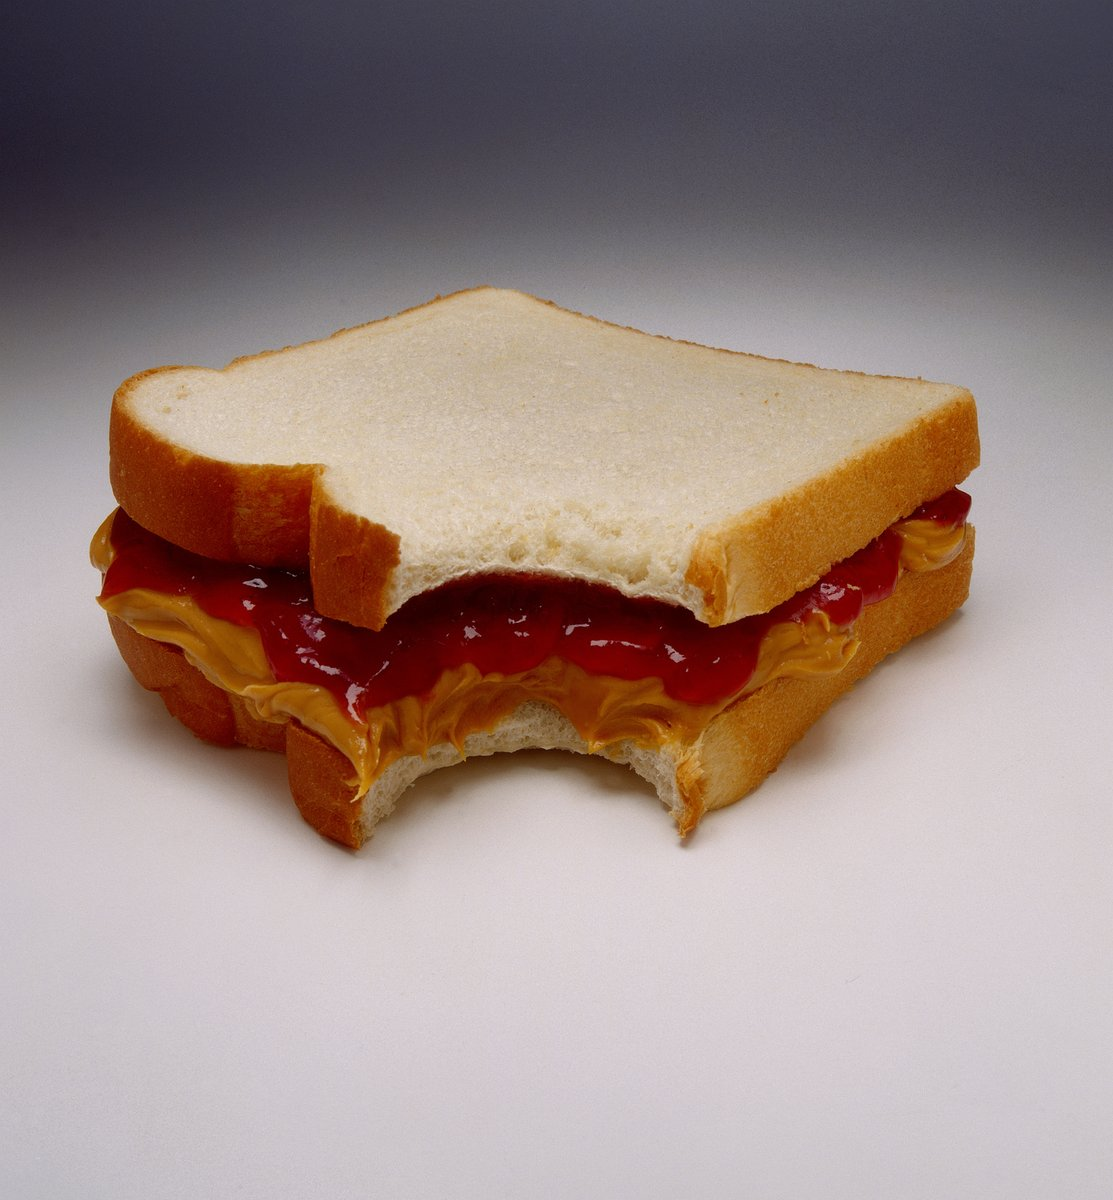 ok so which is the superior sandwich... a PB&J or a grilled cheese? (be nice!) https://t.co/fJi3sWiAqv